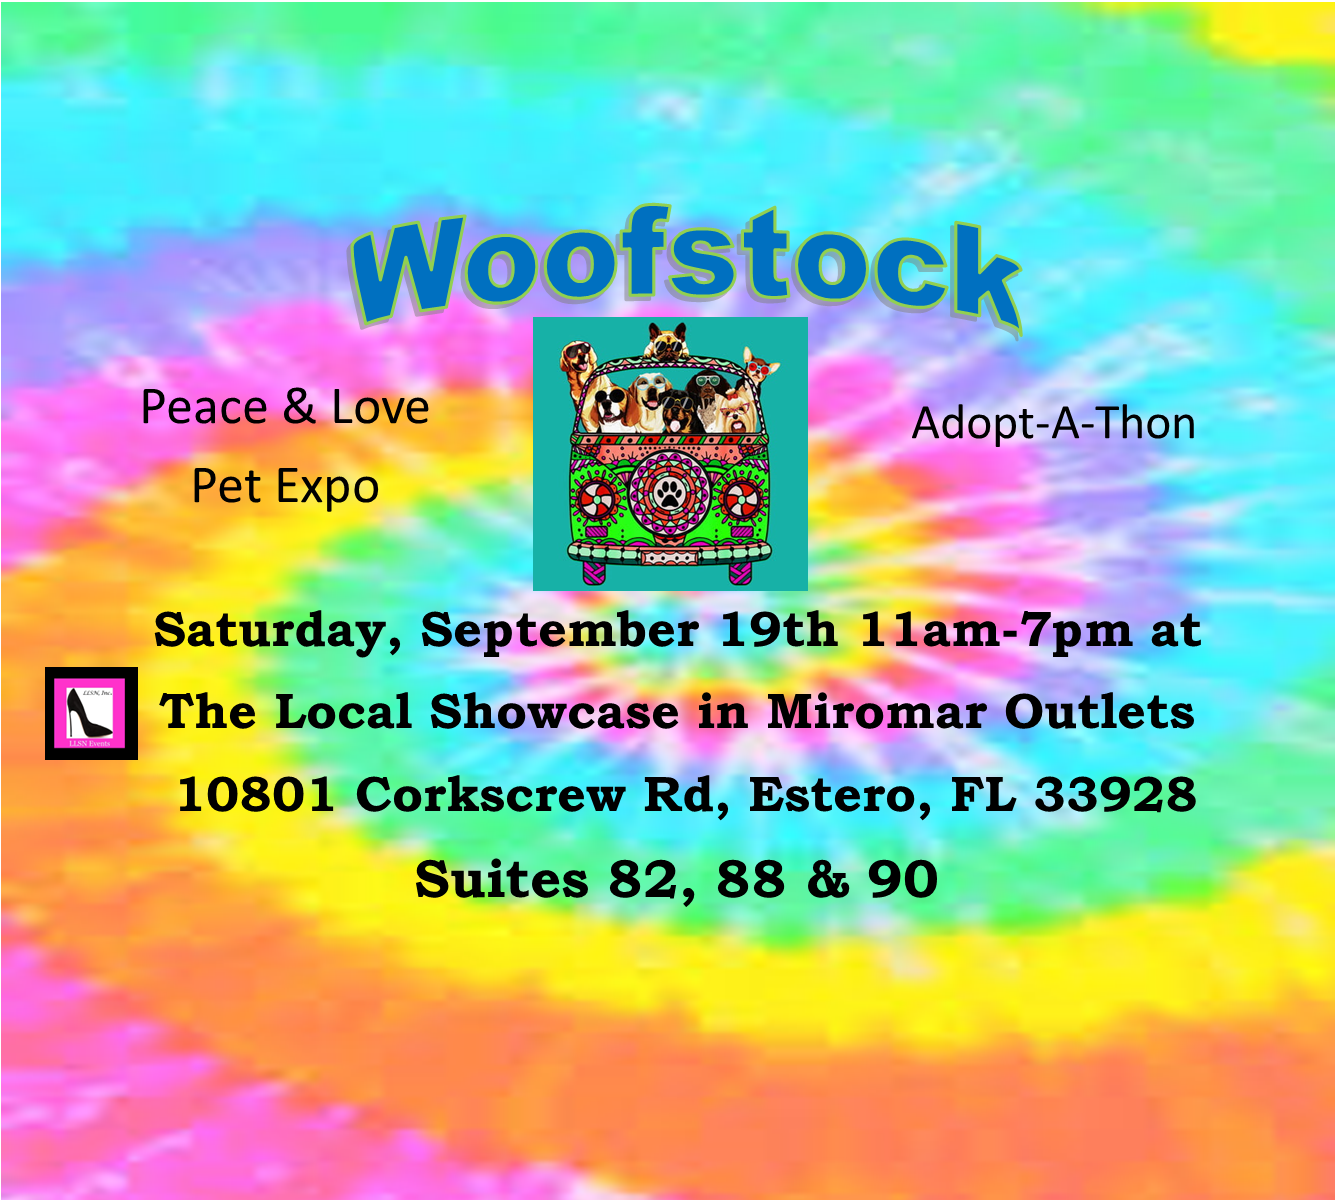 Woofstock- A Peace & Love Pet Expo & Adopt-a-Thon, Sept 19th.